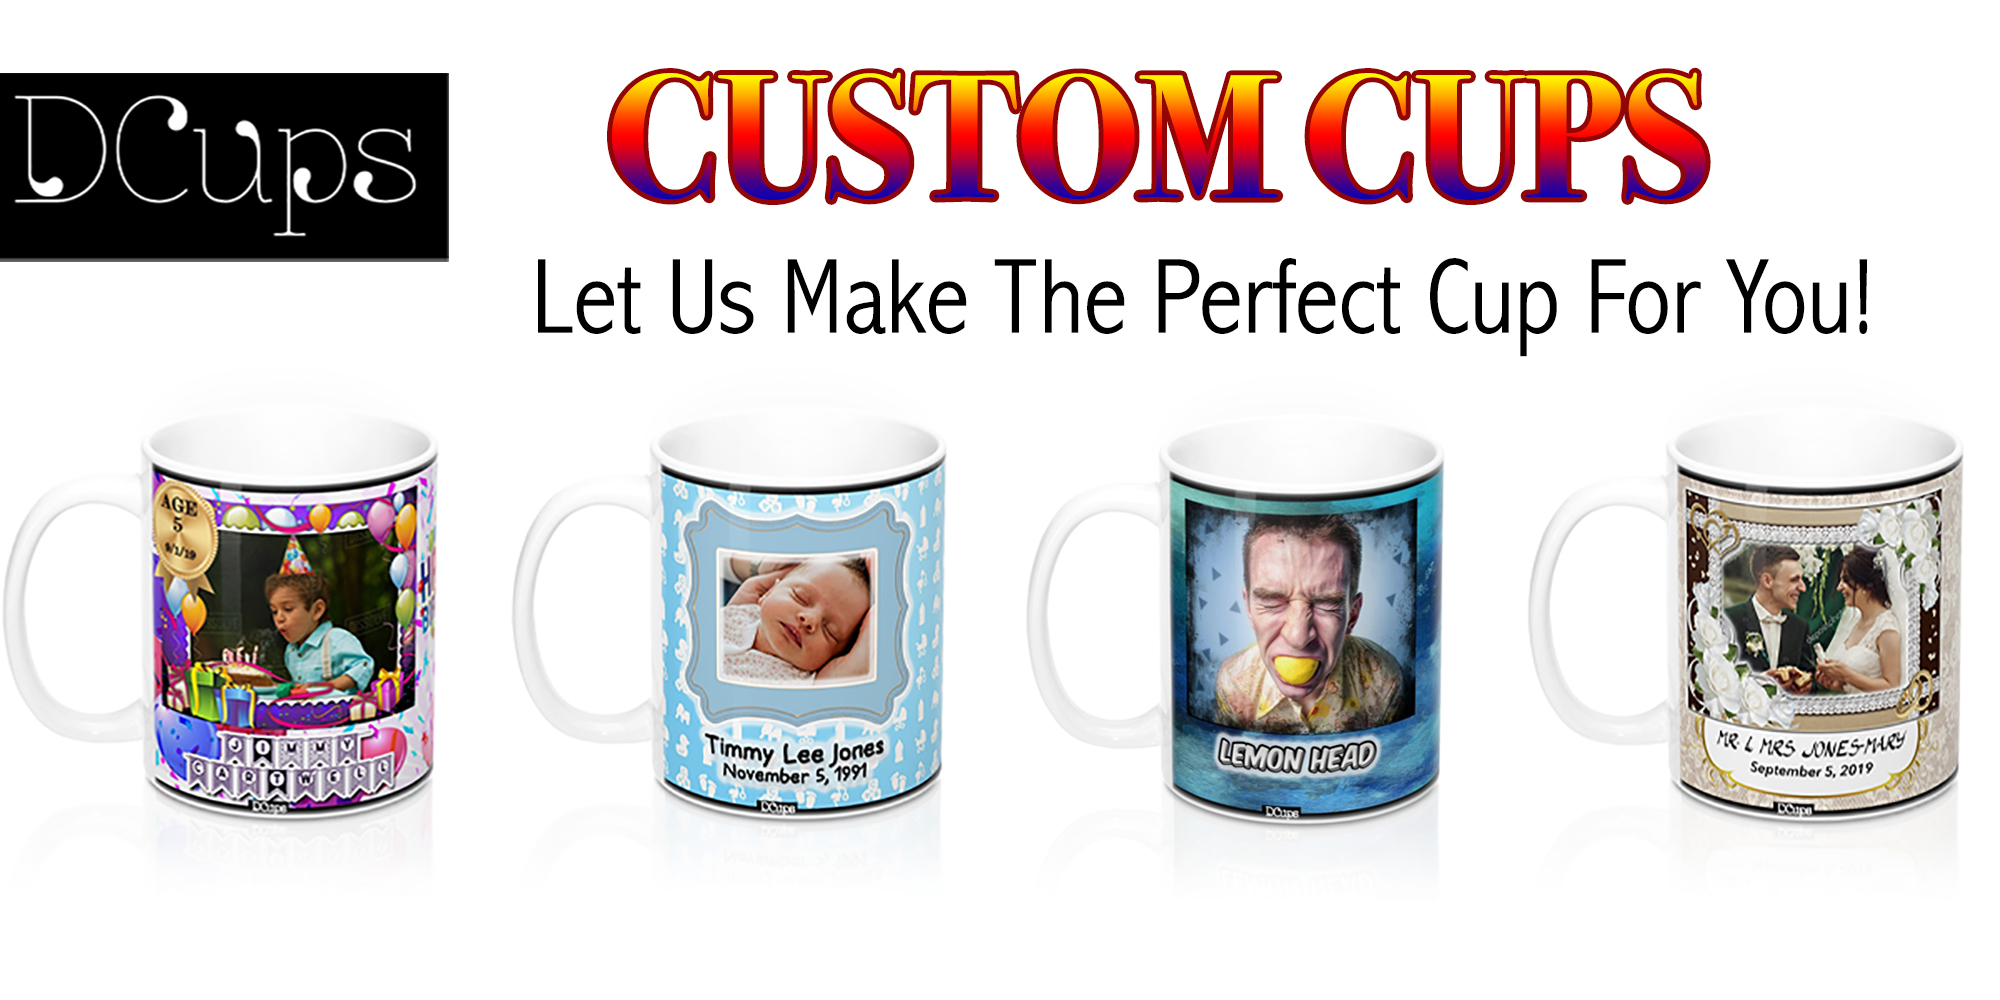 Custom-Cups-Collection-Showcase-Cups-Only-copy